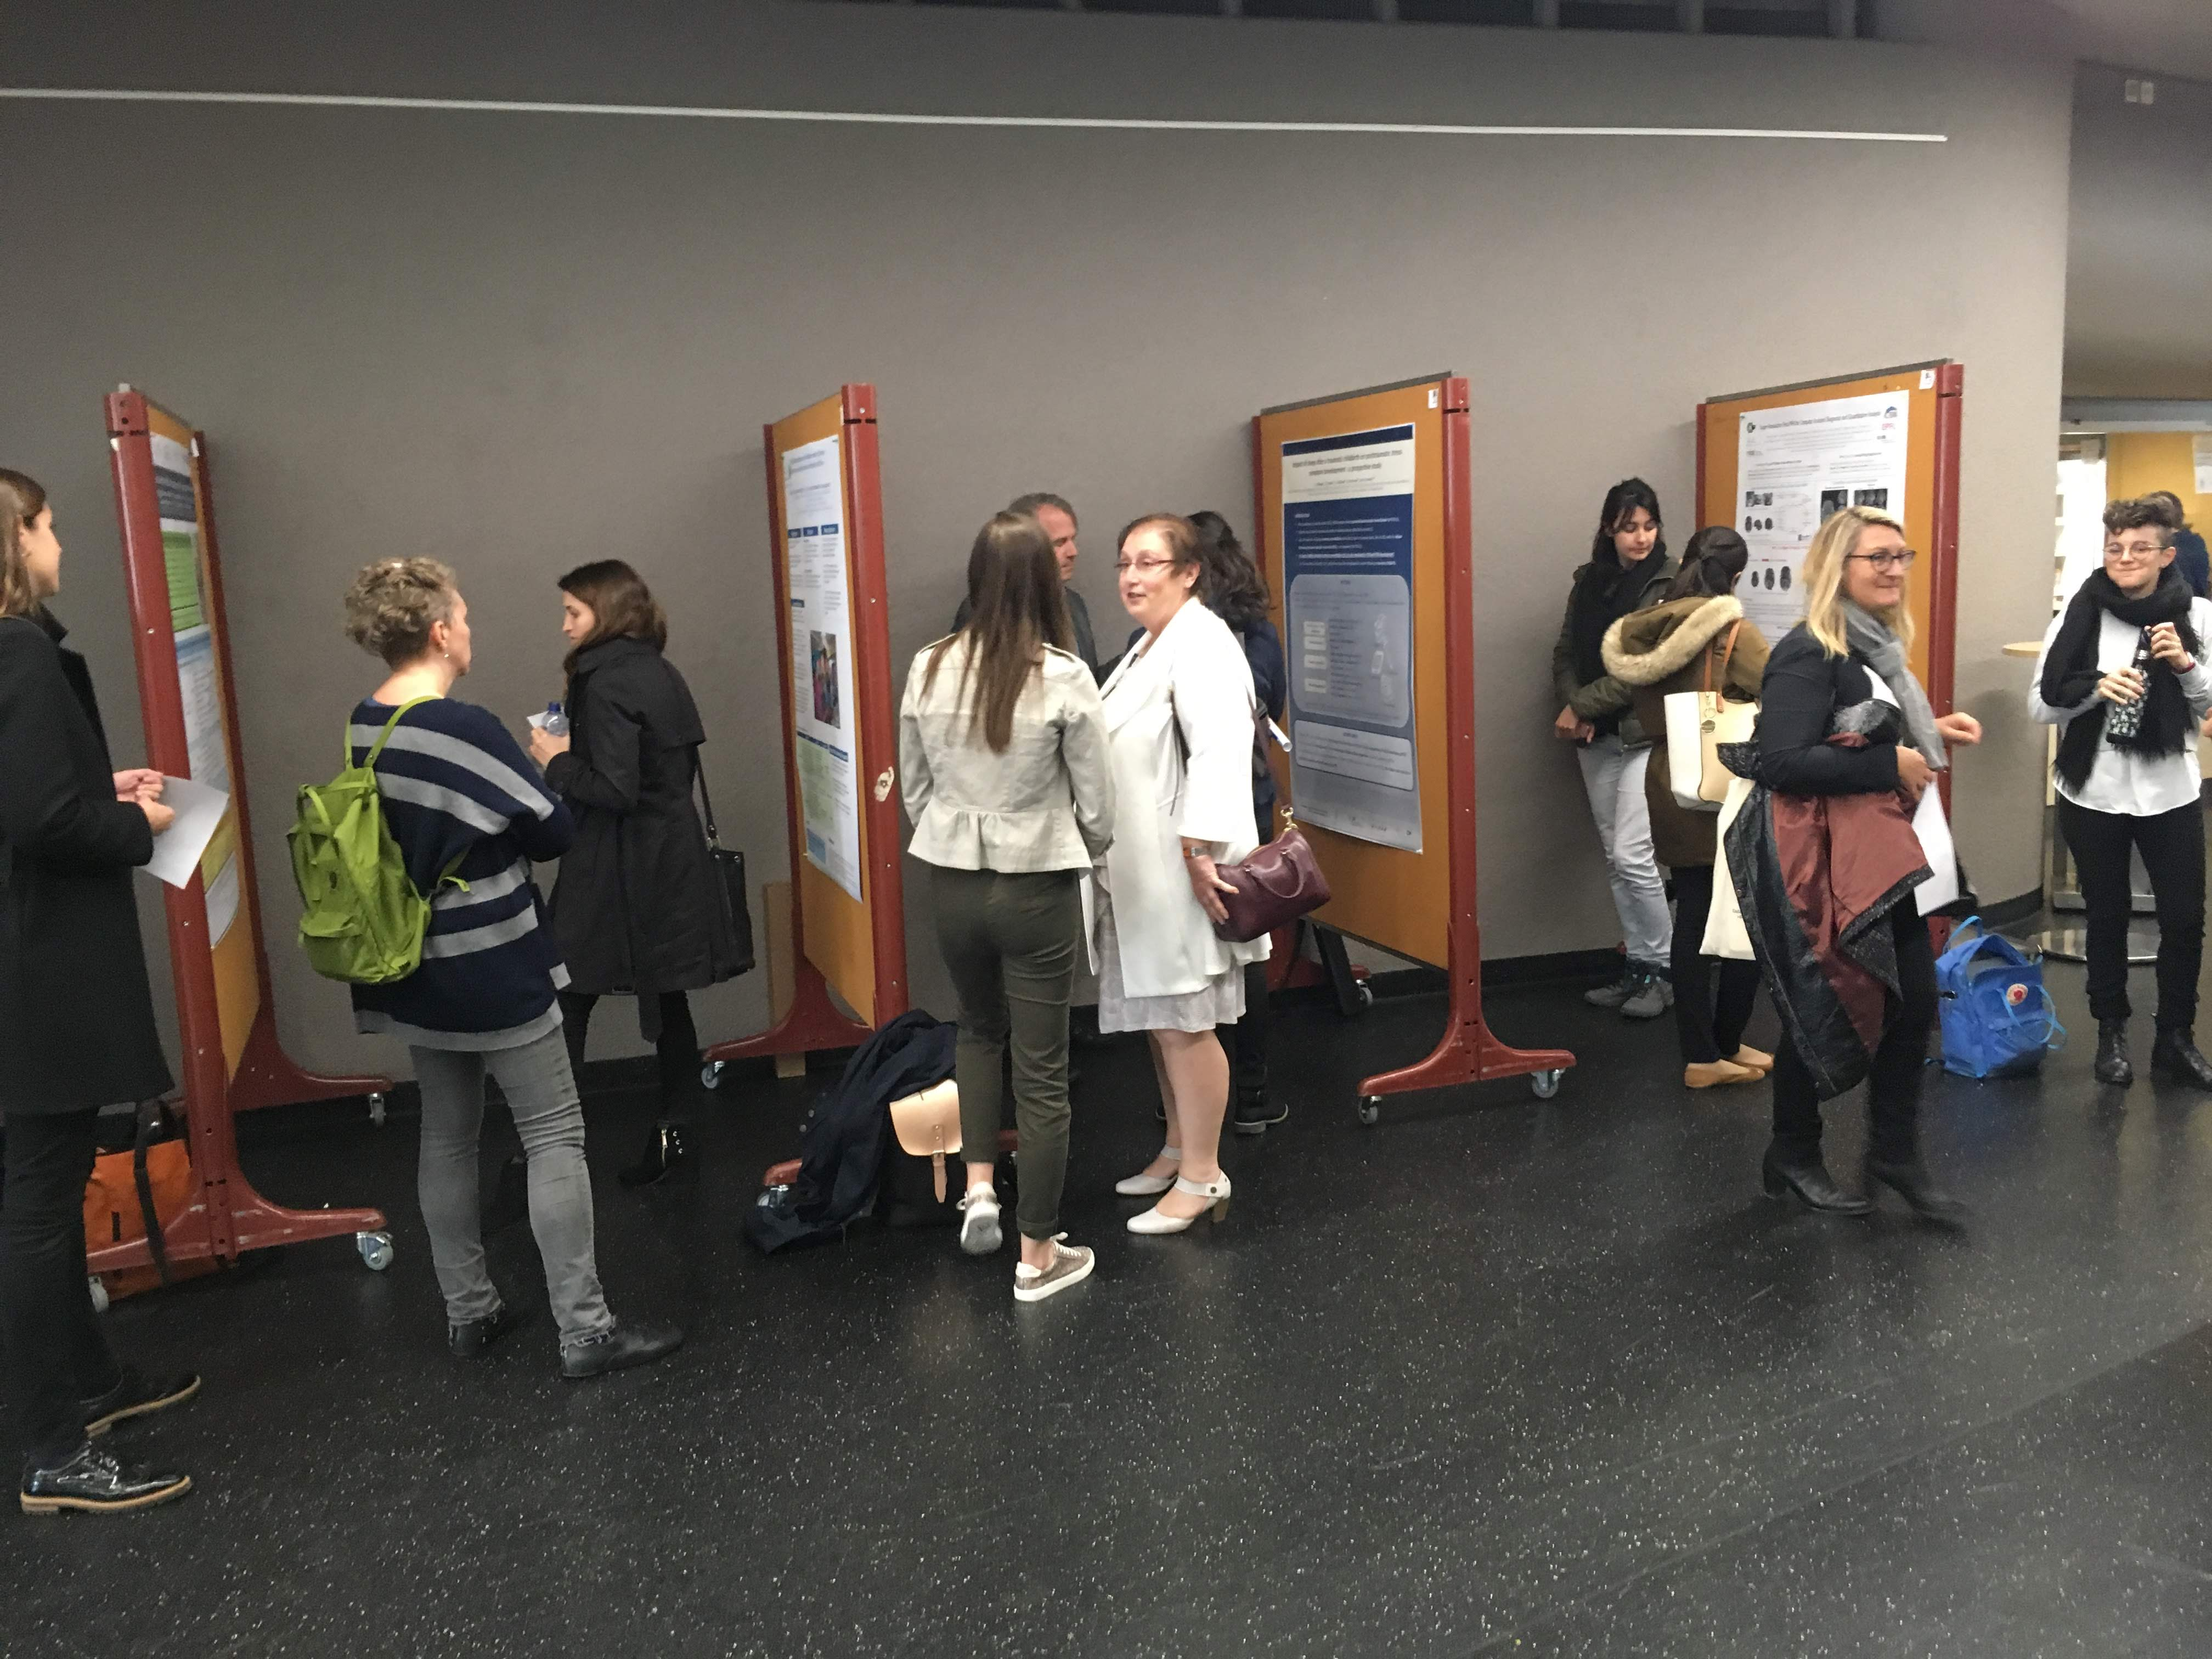 The first Swiss Perinatal Research day hosted by the Lausanne Perinatal Research Group and funded by the FNS Scientific Exchanges grant and the Faculty of Medicine and Biology of the University of Lausanne was held on the 17th May.